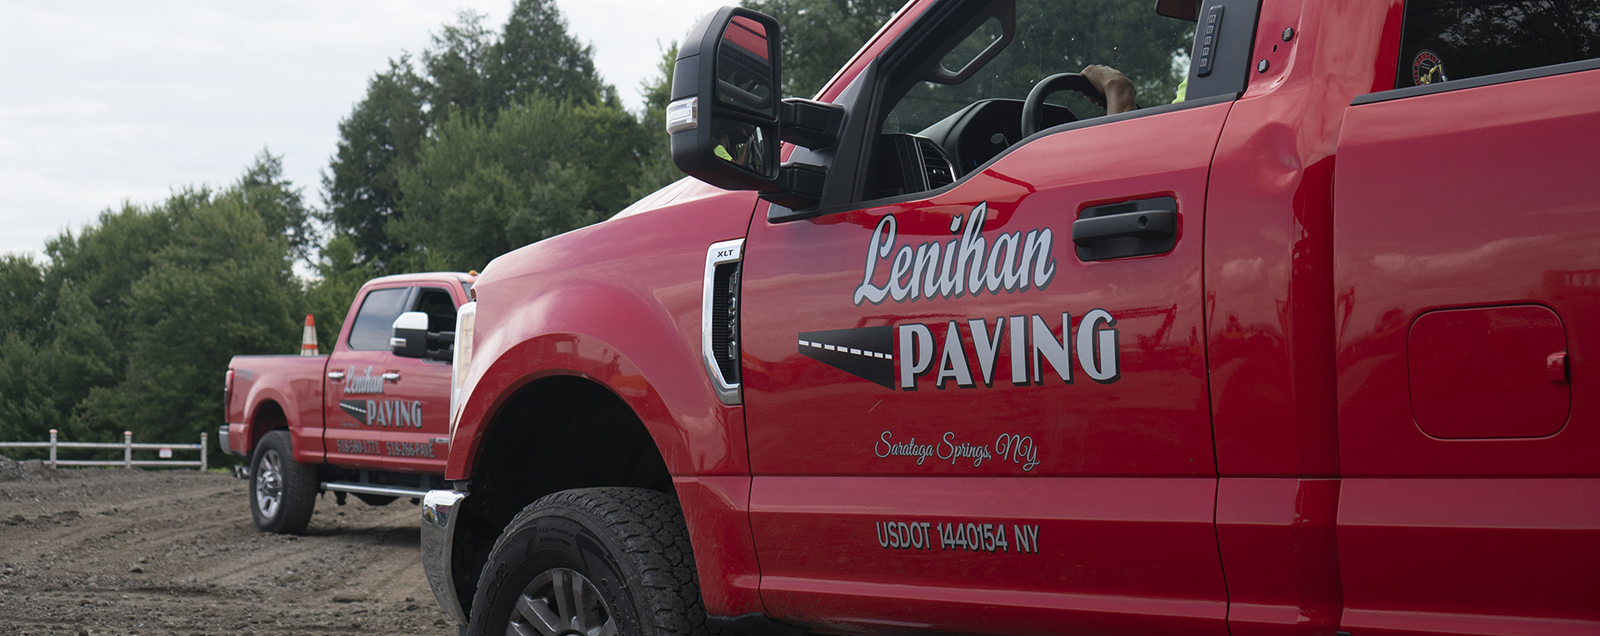 The Lenihan Paving Company